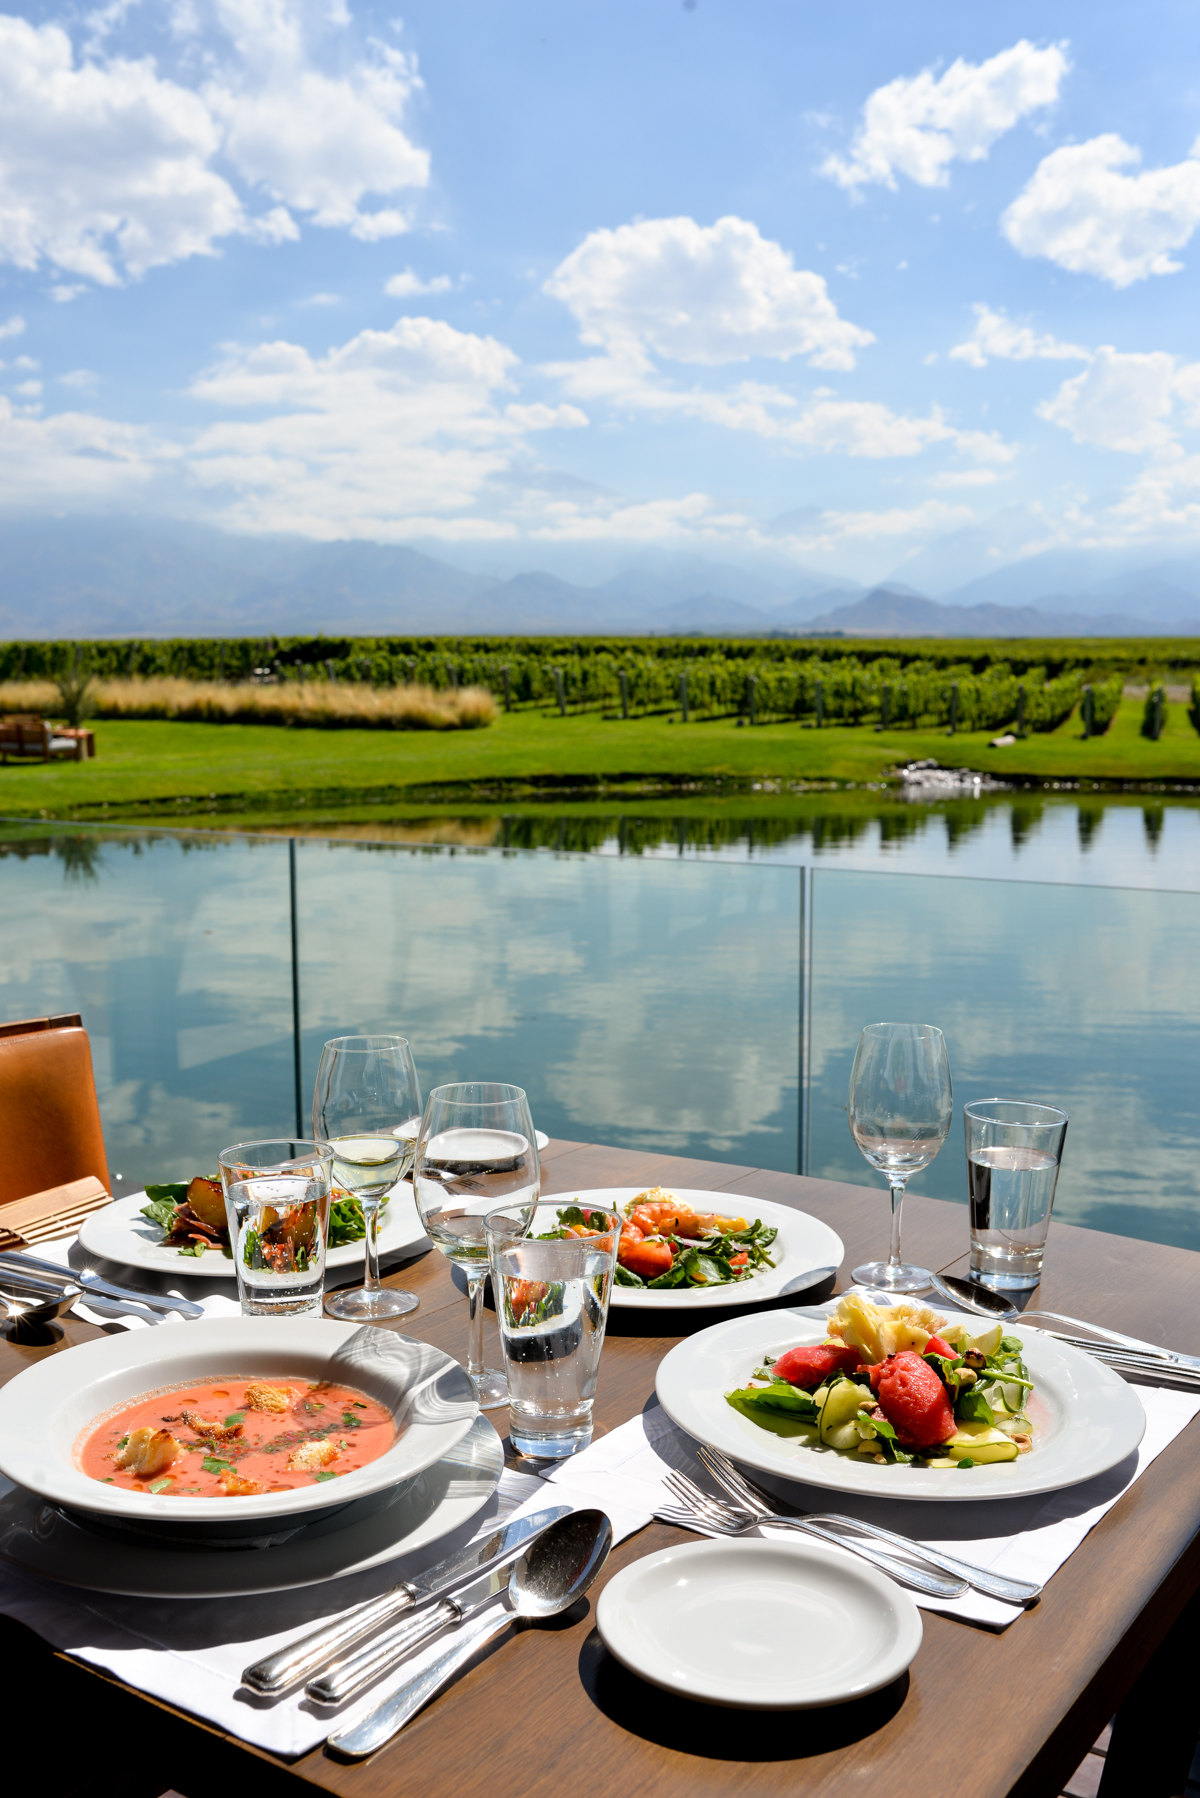 Stacie-Flinner-The-Vines-Resort-Spa- Mendoza-21